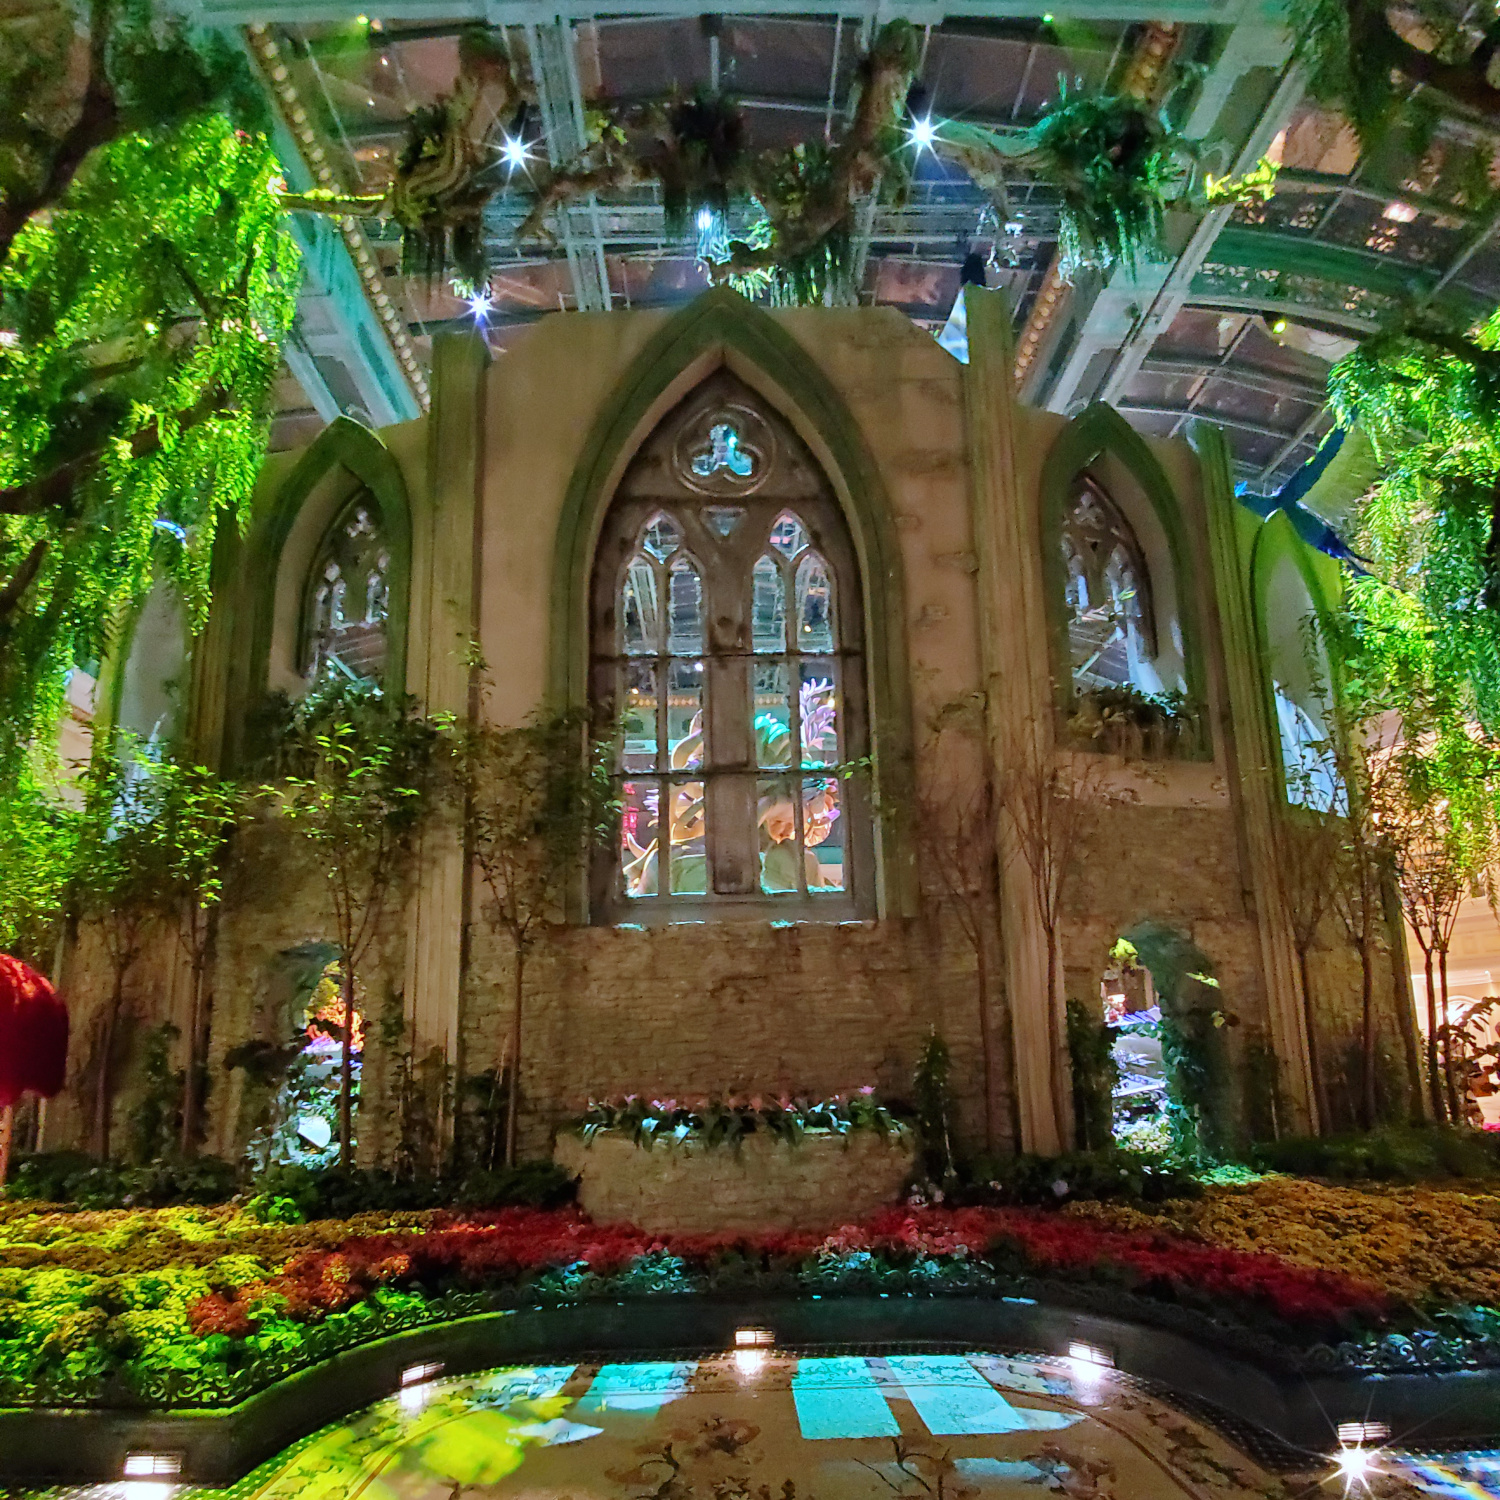 An amazing indoor cathedral piece at a Las Vegas casino